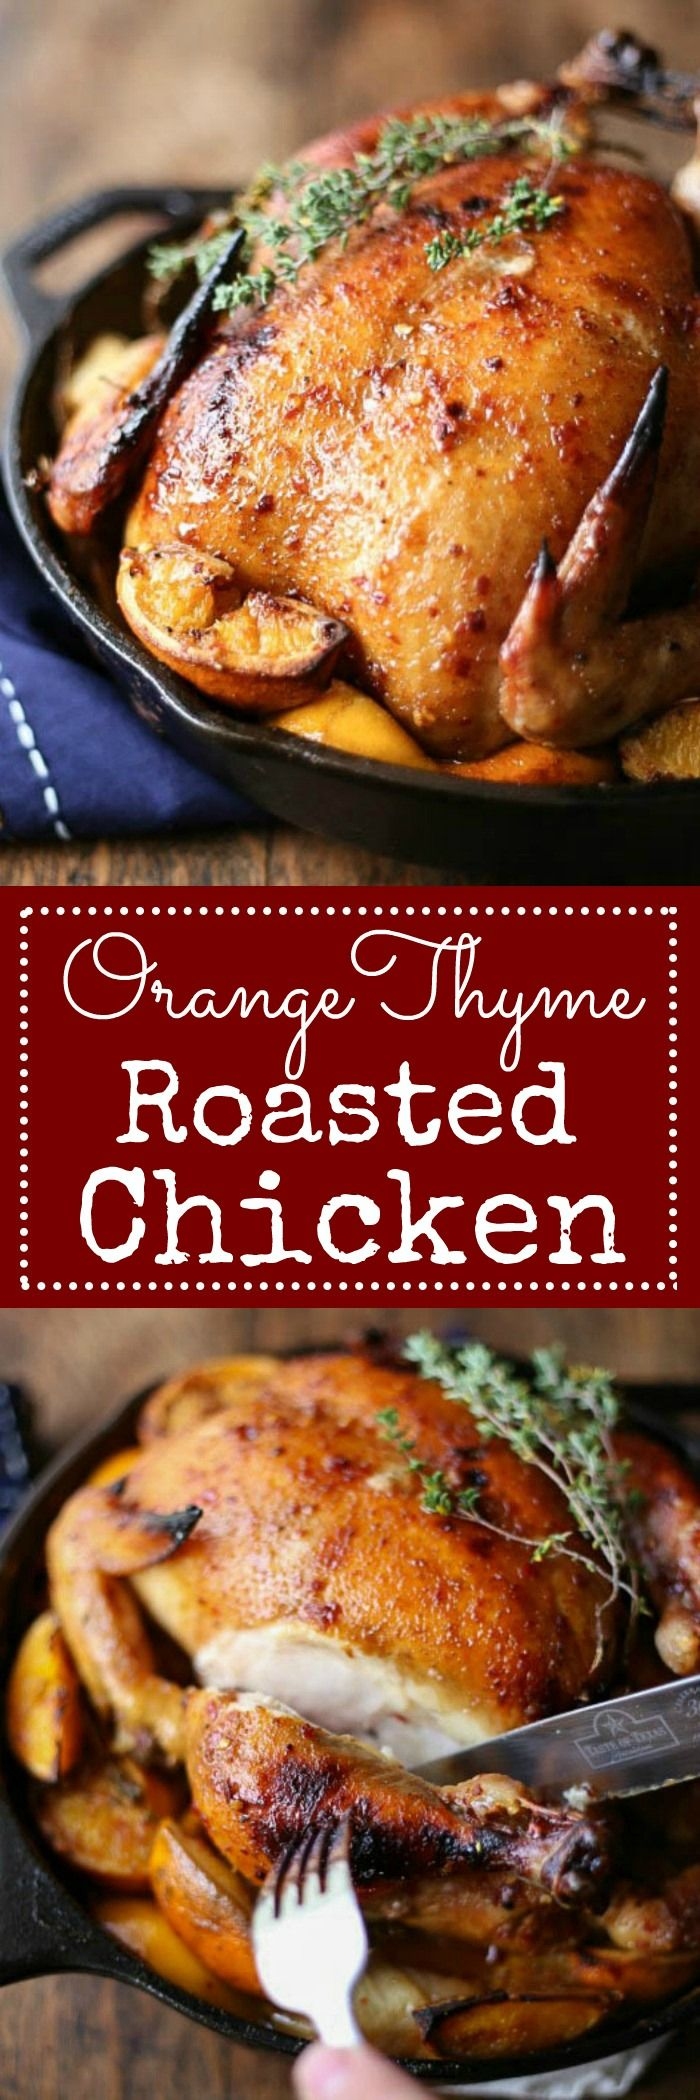 Orange Thyme Roasted Chicken - A whole chicken roasted in a cast iron pan on a bed of oranges, onion and fresh thyme. Maybe the best chicken you've ever had! | louloubiscuit.com